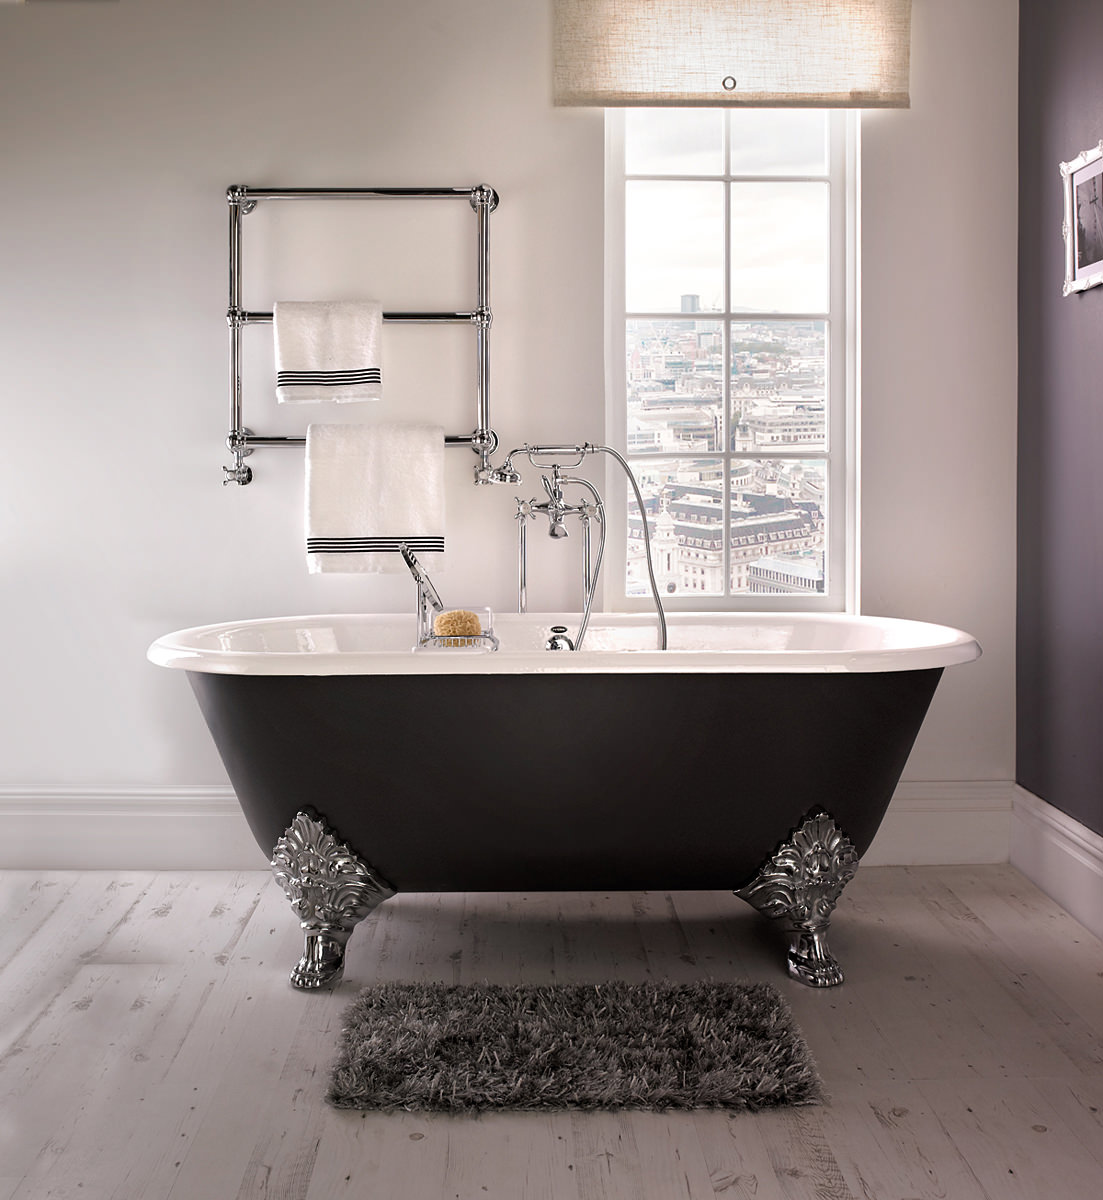 Imperial Roseland 1780mm Cast Iron Bath With Feet Zci000109s